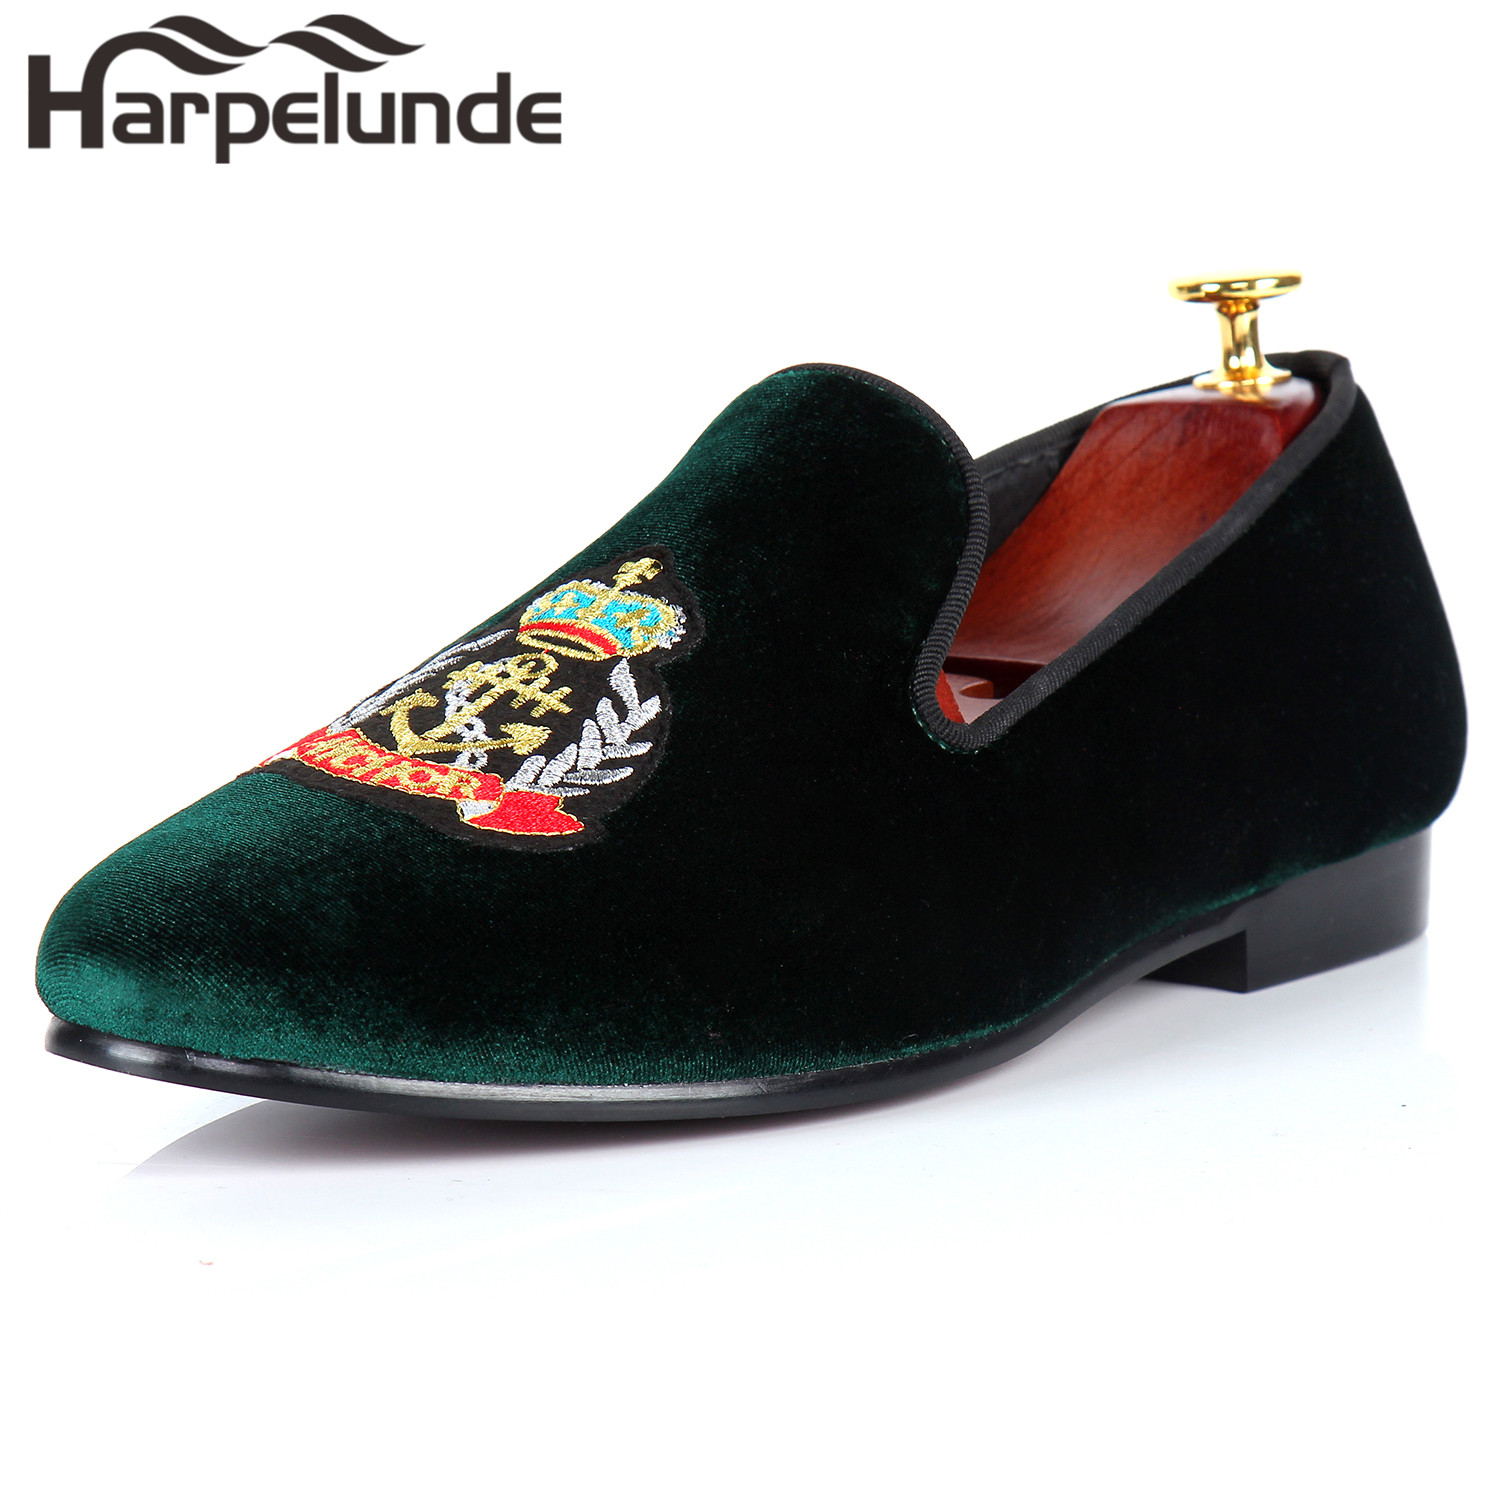 цены Harpelunde Anchor Embroidery Men Dress Loafer Shoes Green Velvet Slippers Size 6-14